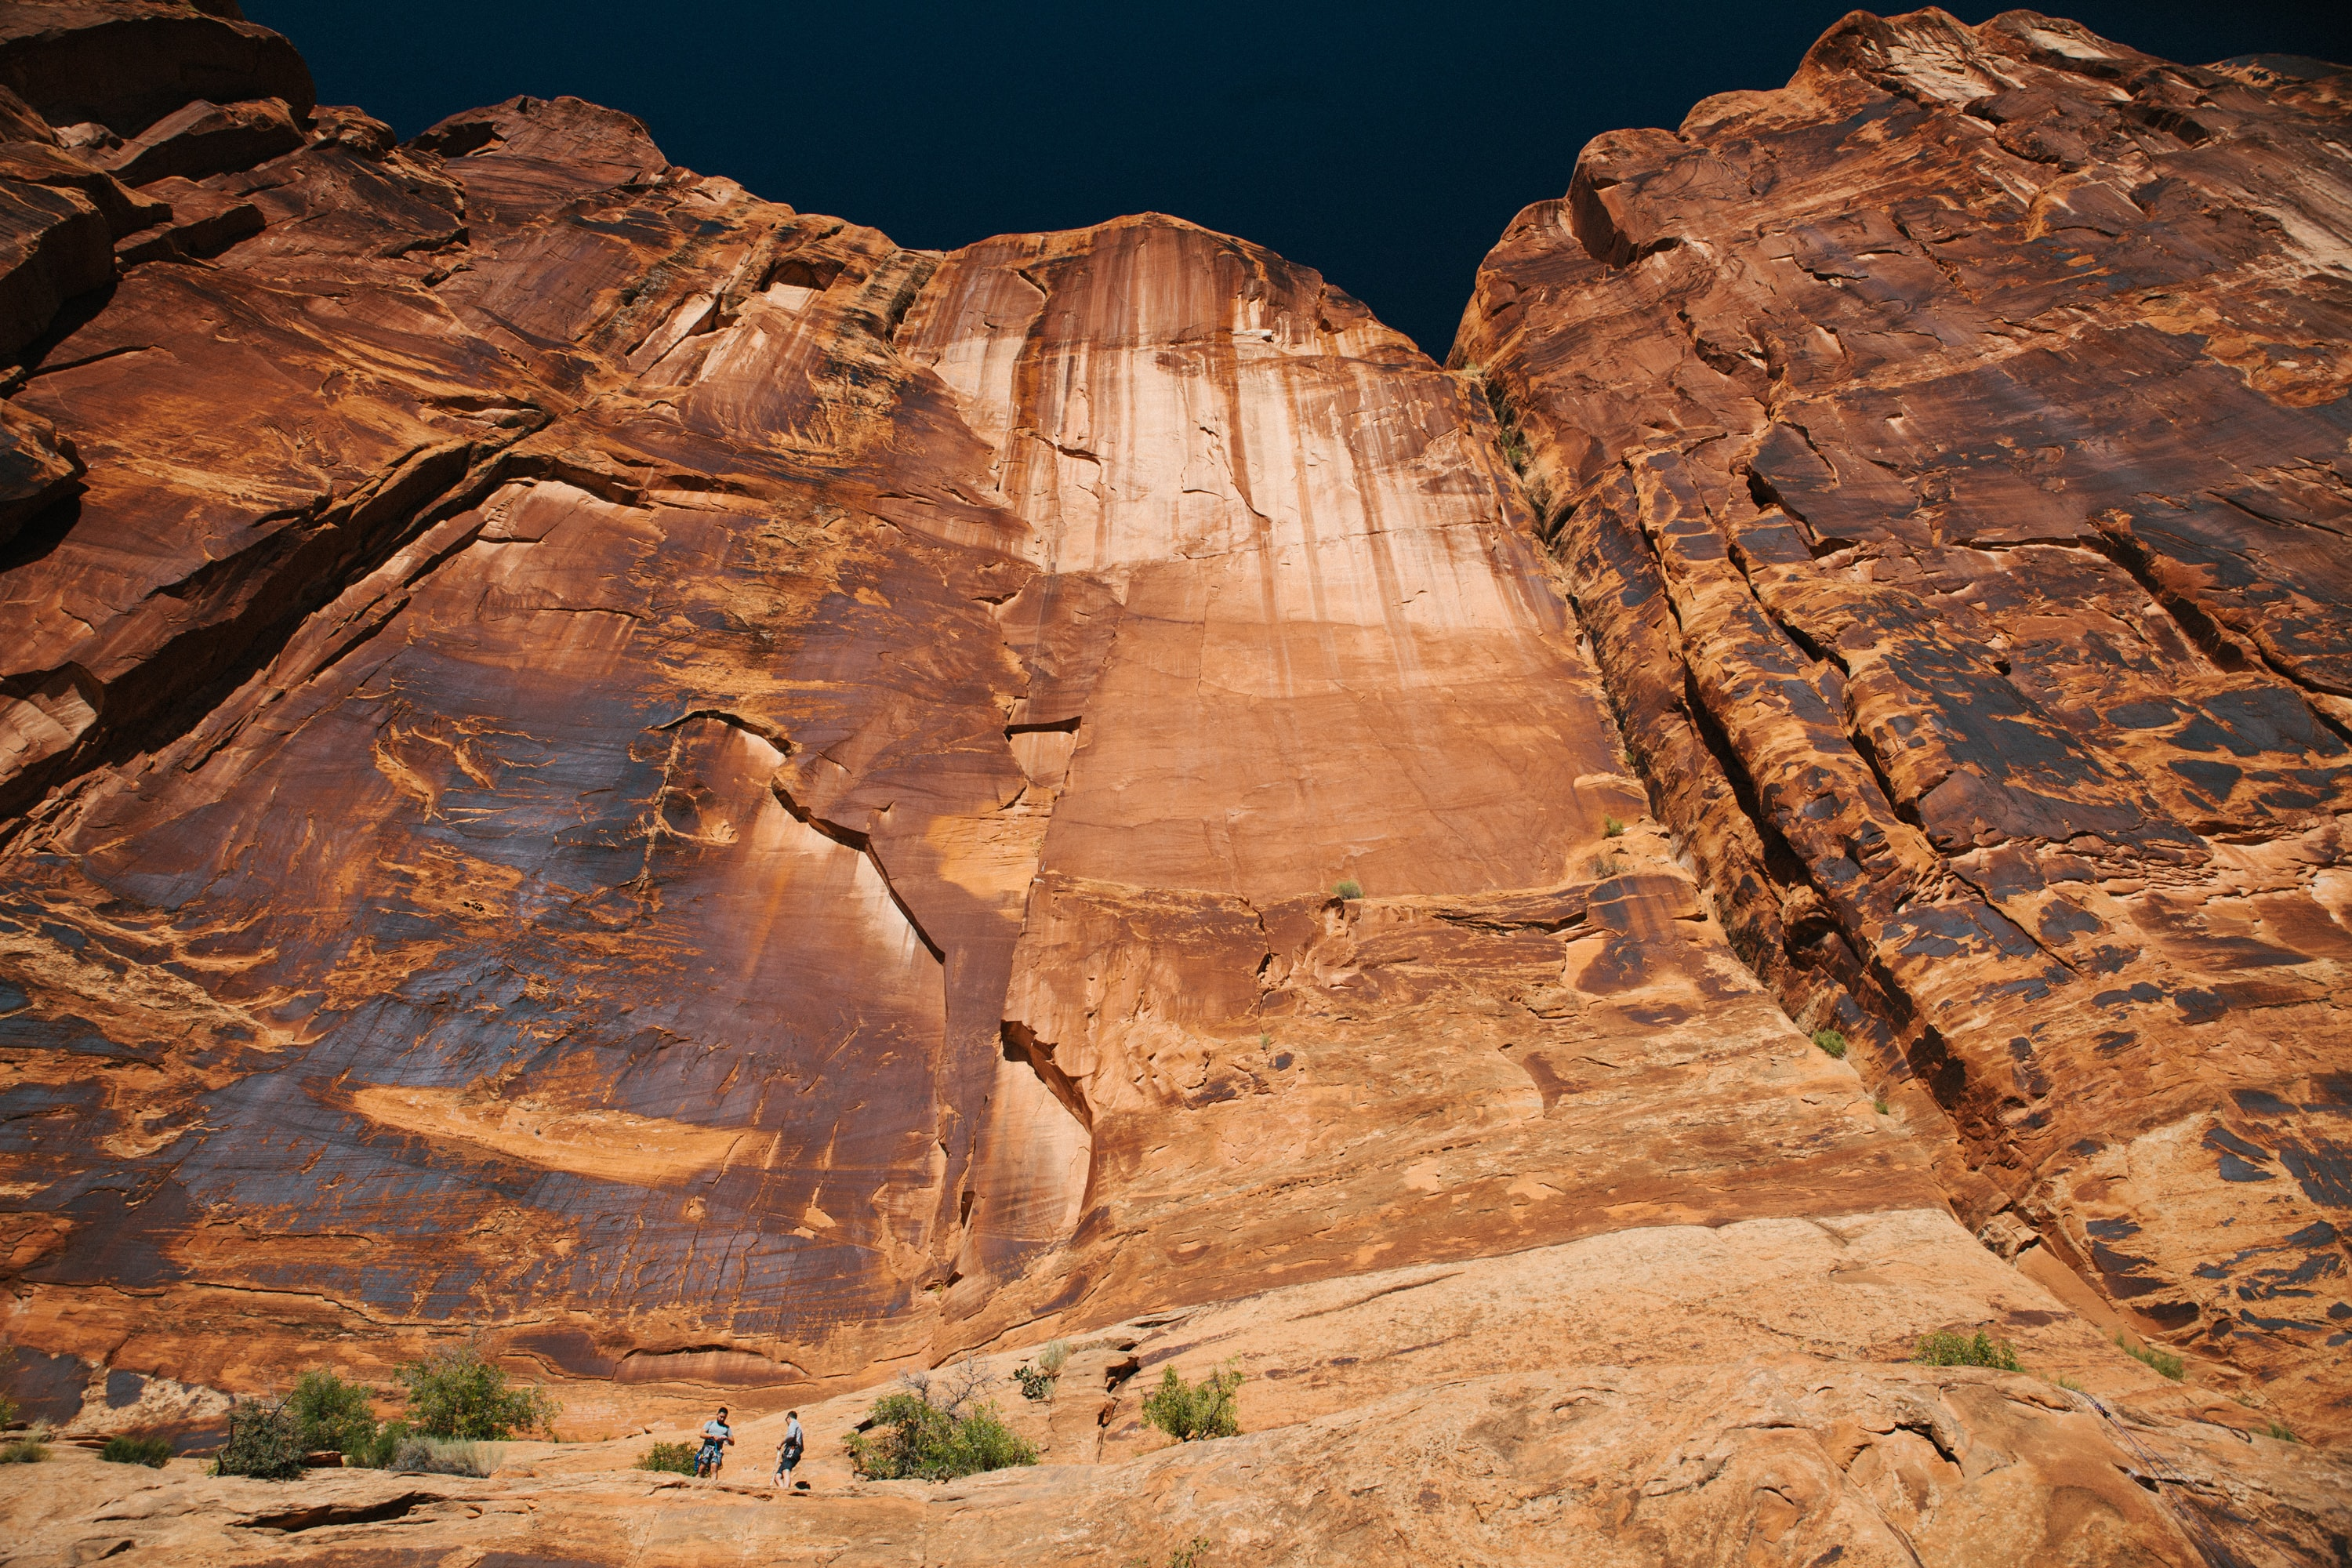 Two people at the foot of a tall vertical face of red rock